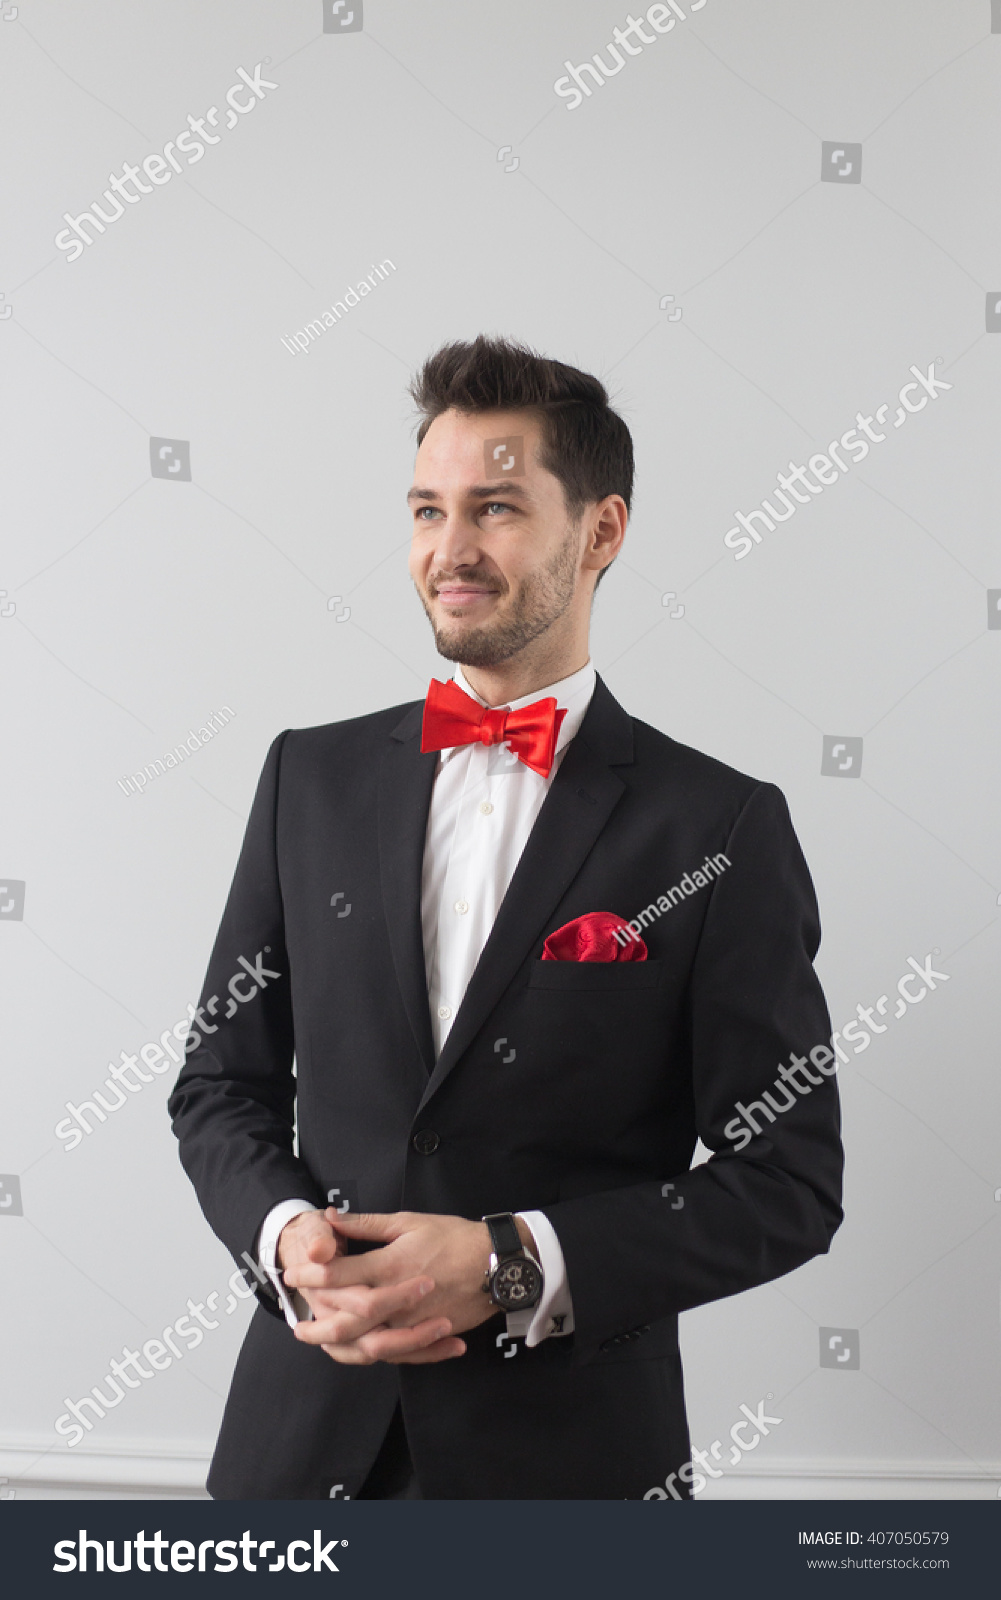 Royalty-free Portrait of a handsome young man.… #407050579 Stock